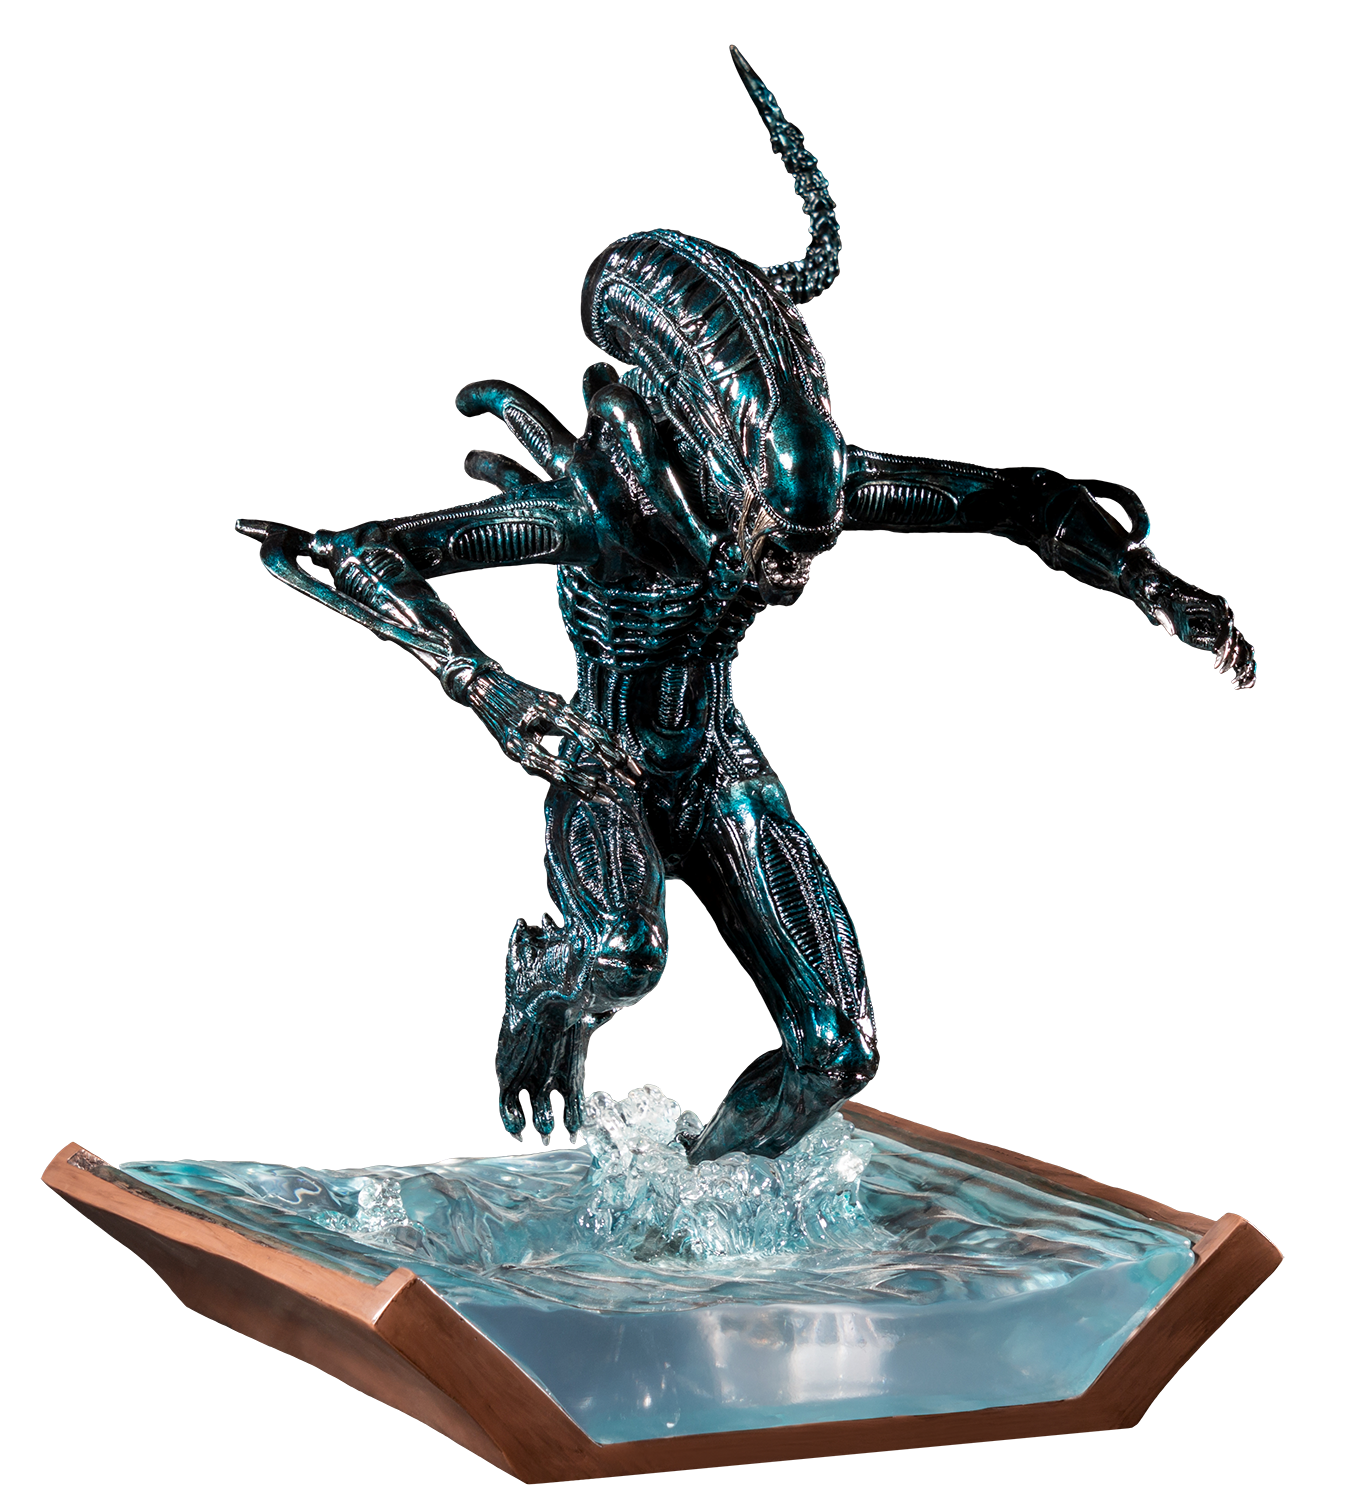 IKO1124-Alien-in-Water-Statue-New-Paint-2-318.png